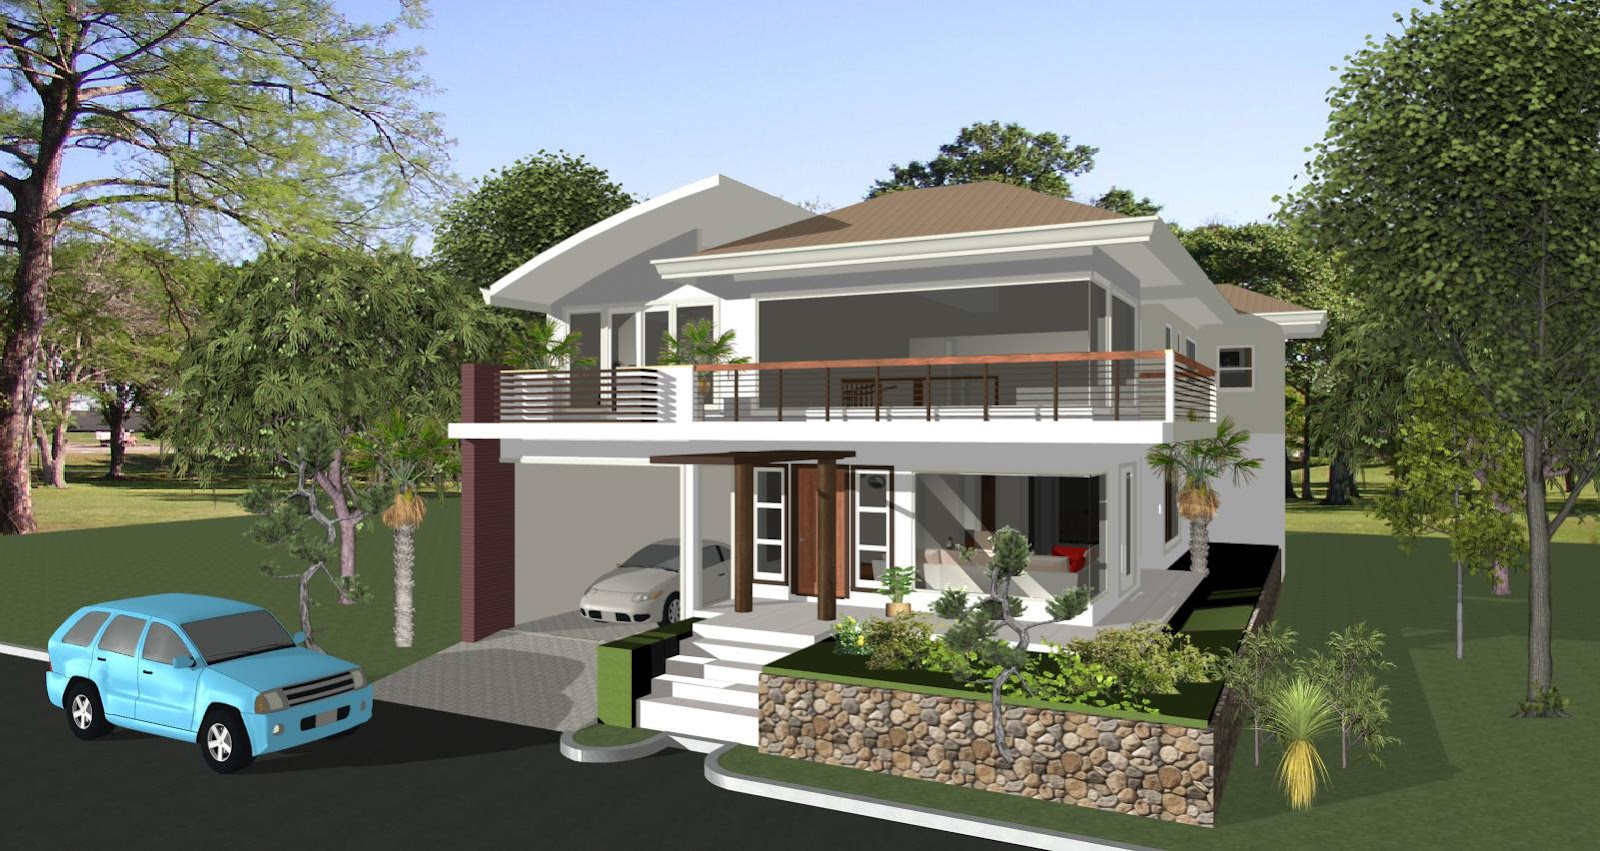 House designs philippines architect bill house plans for Big house design ideas